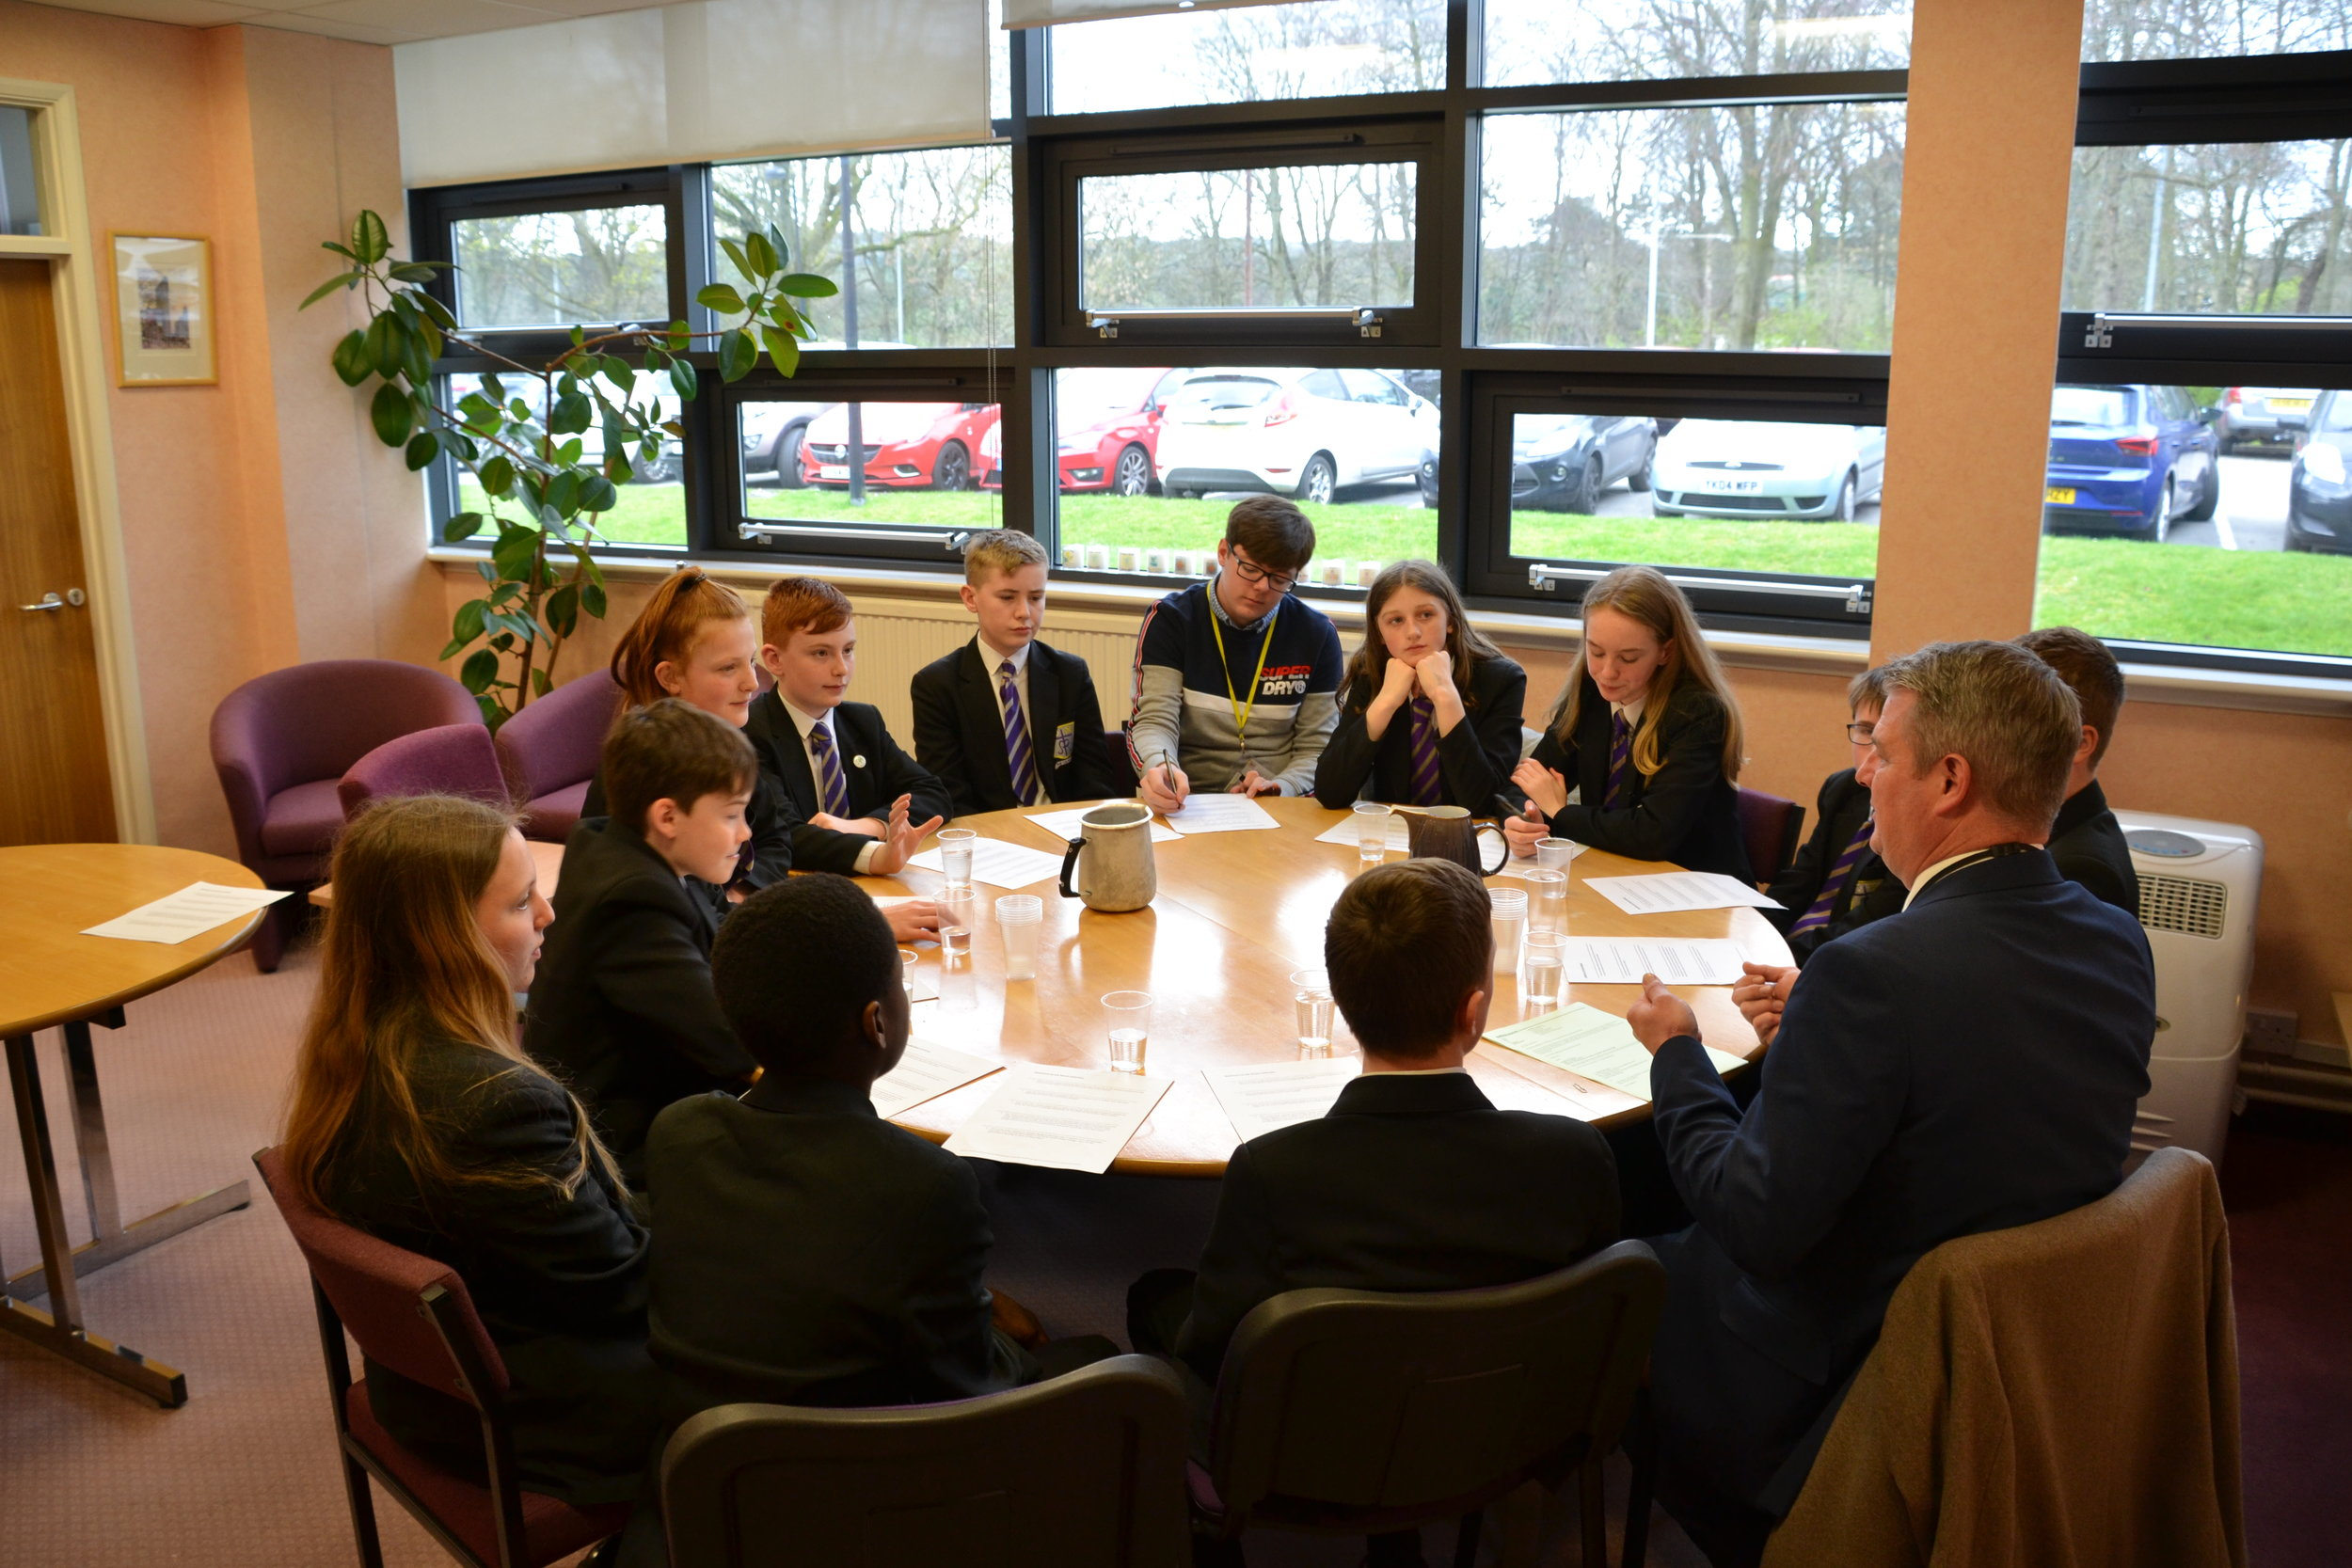 Tom with the Global Warriors Group in discussion with their local MP, Stuart Adams